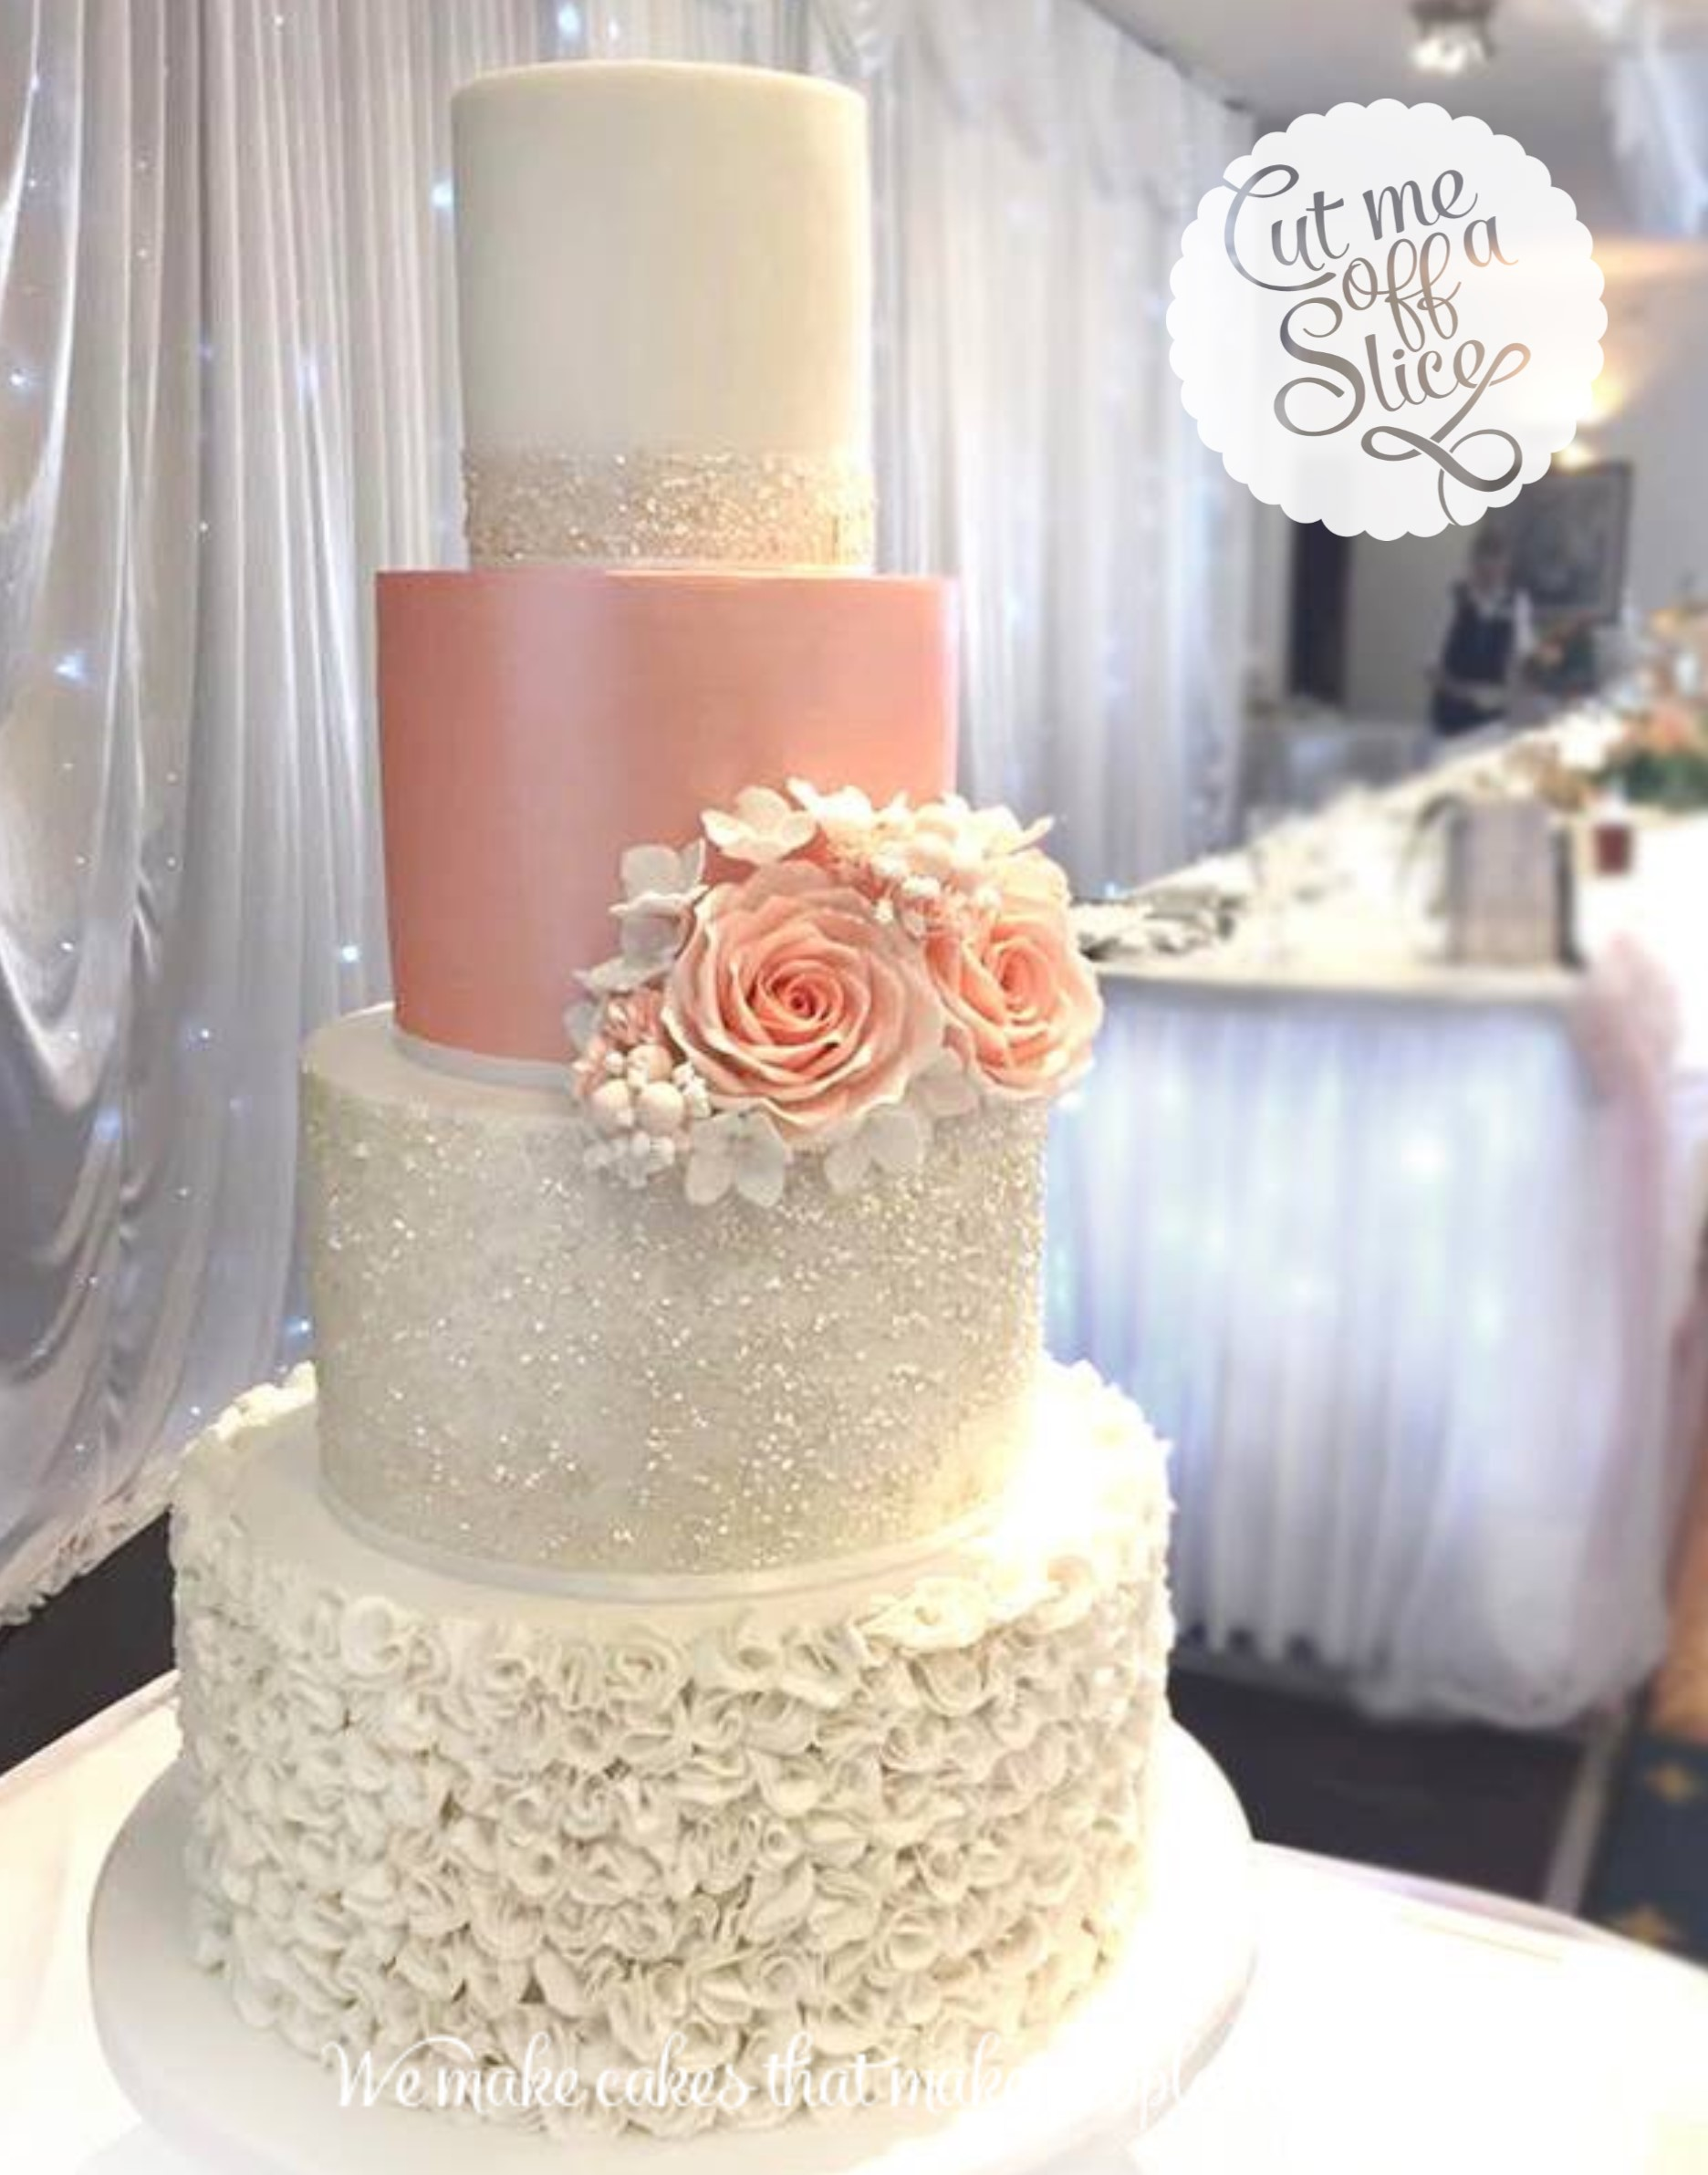 wedding cake designs 2013 wedding cake inspiration from cut me a slice 22463